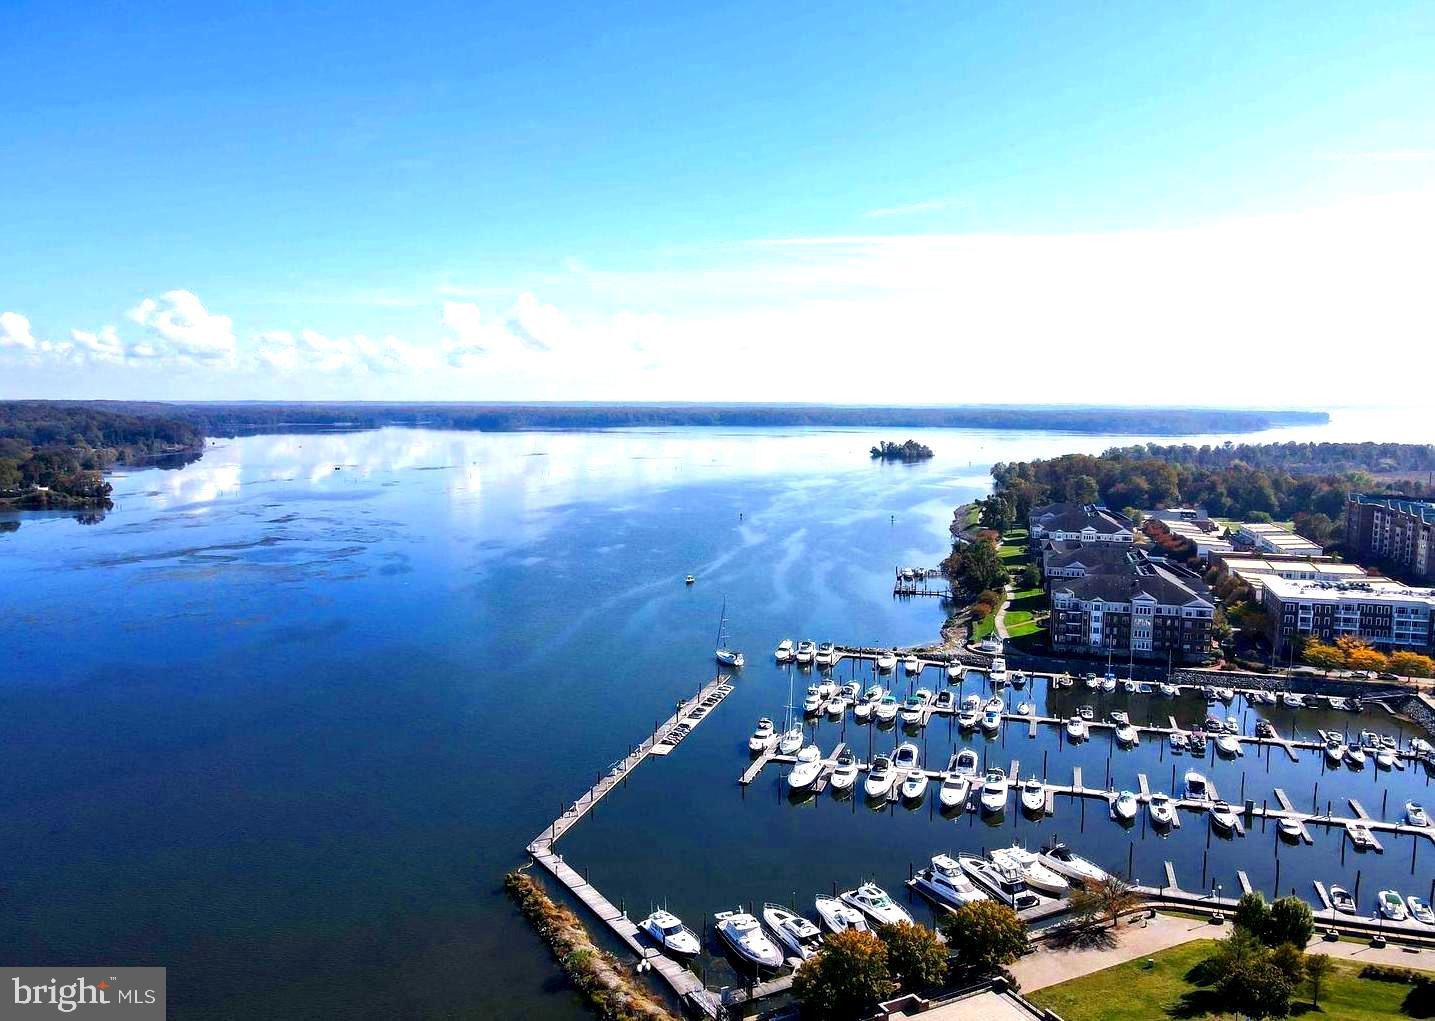 RARE OPPORTUNITY TO OWN DRAMATIC CONDO/TOWNHOME VILLA IN BELMONT BAY WITH BALCONY VIEW OF TRAILS AND